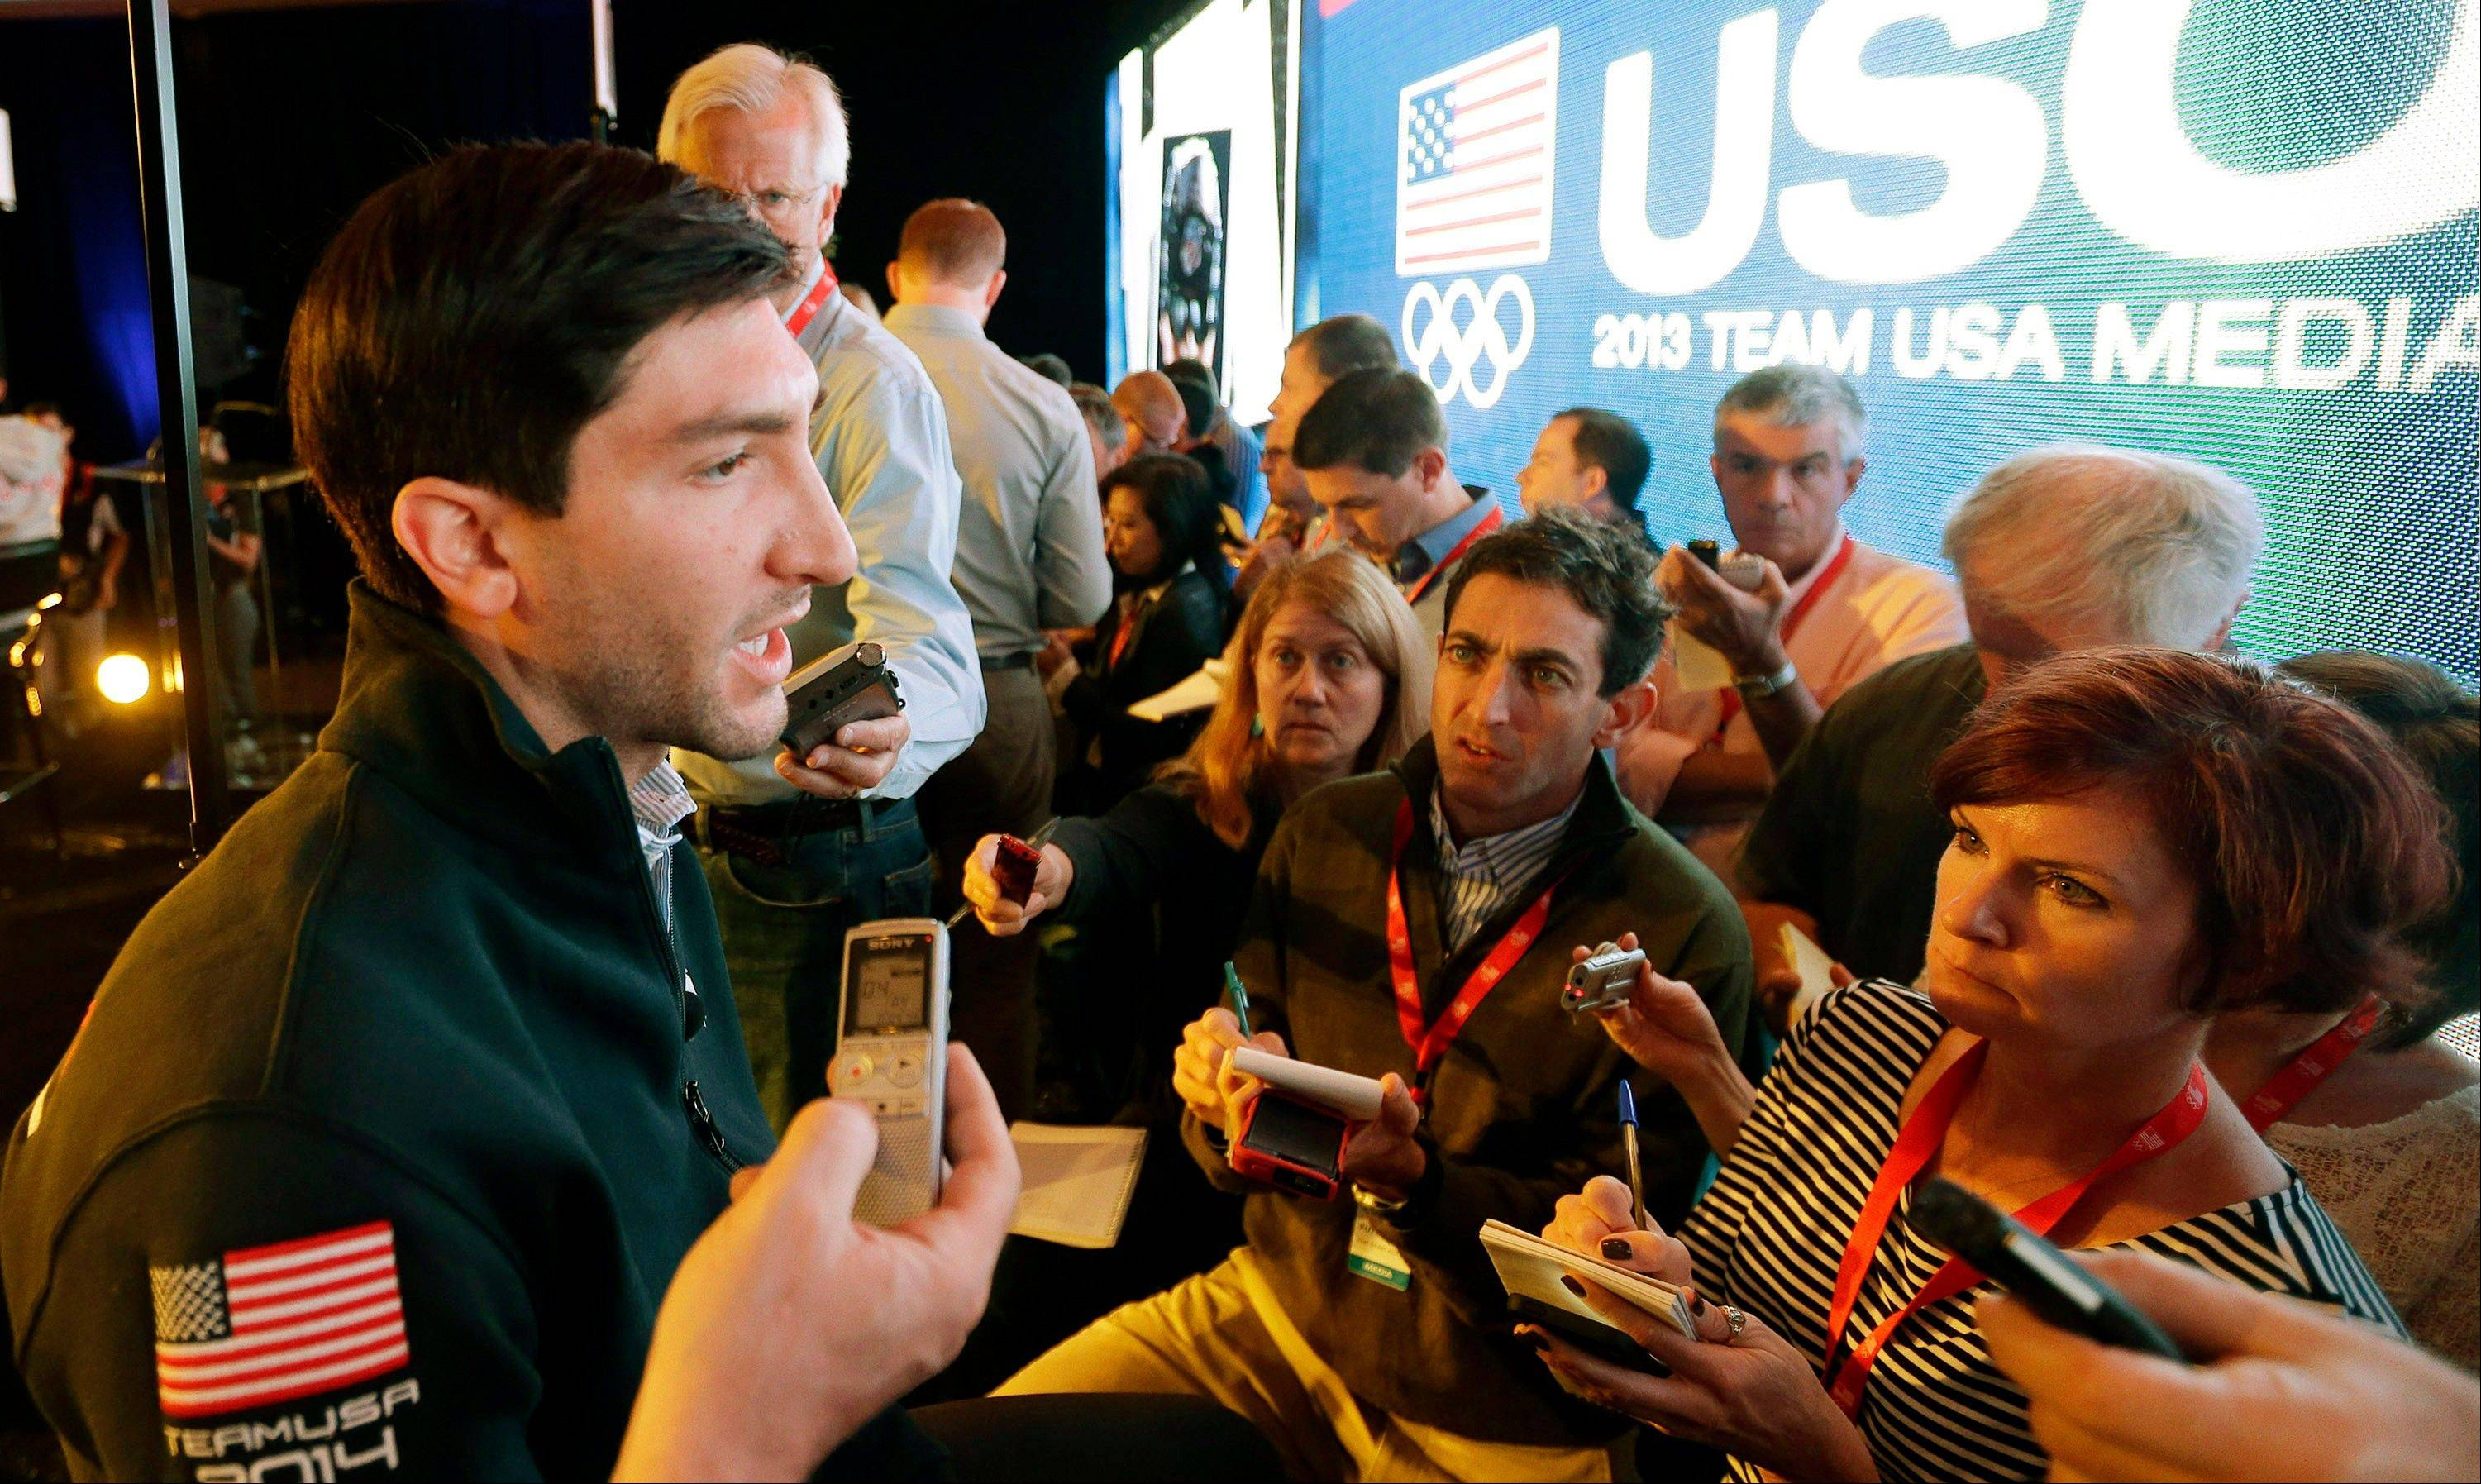 Olympic figure skating champion Evan Lysacek says he's doing double and triple jumps in practice as he tries to come back from injury in time to defend his title in Sochi, Russia.